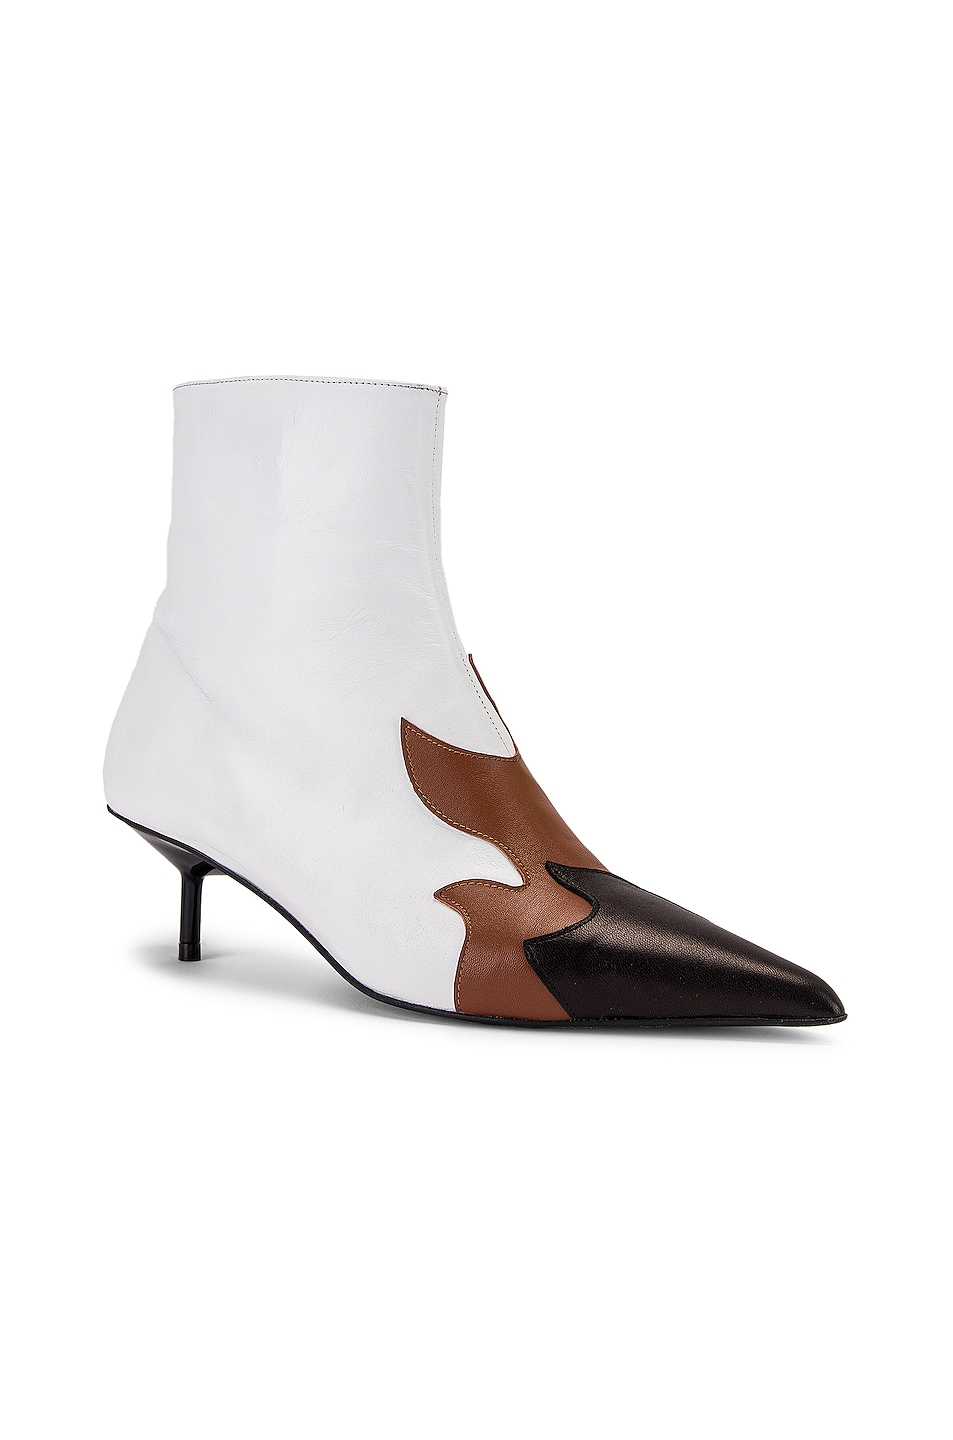 Image 2 of Marques ' Almeida Pointy Kitten Heel Flame Boot in White, Brown & Black